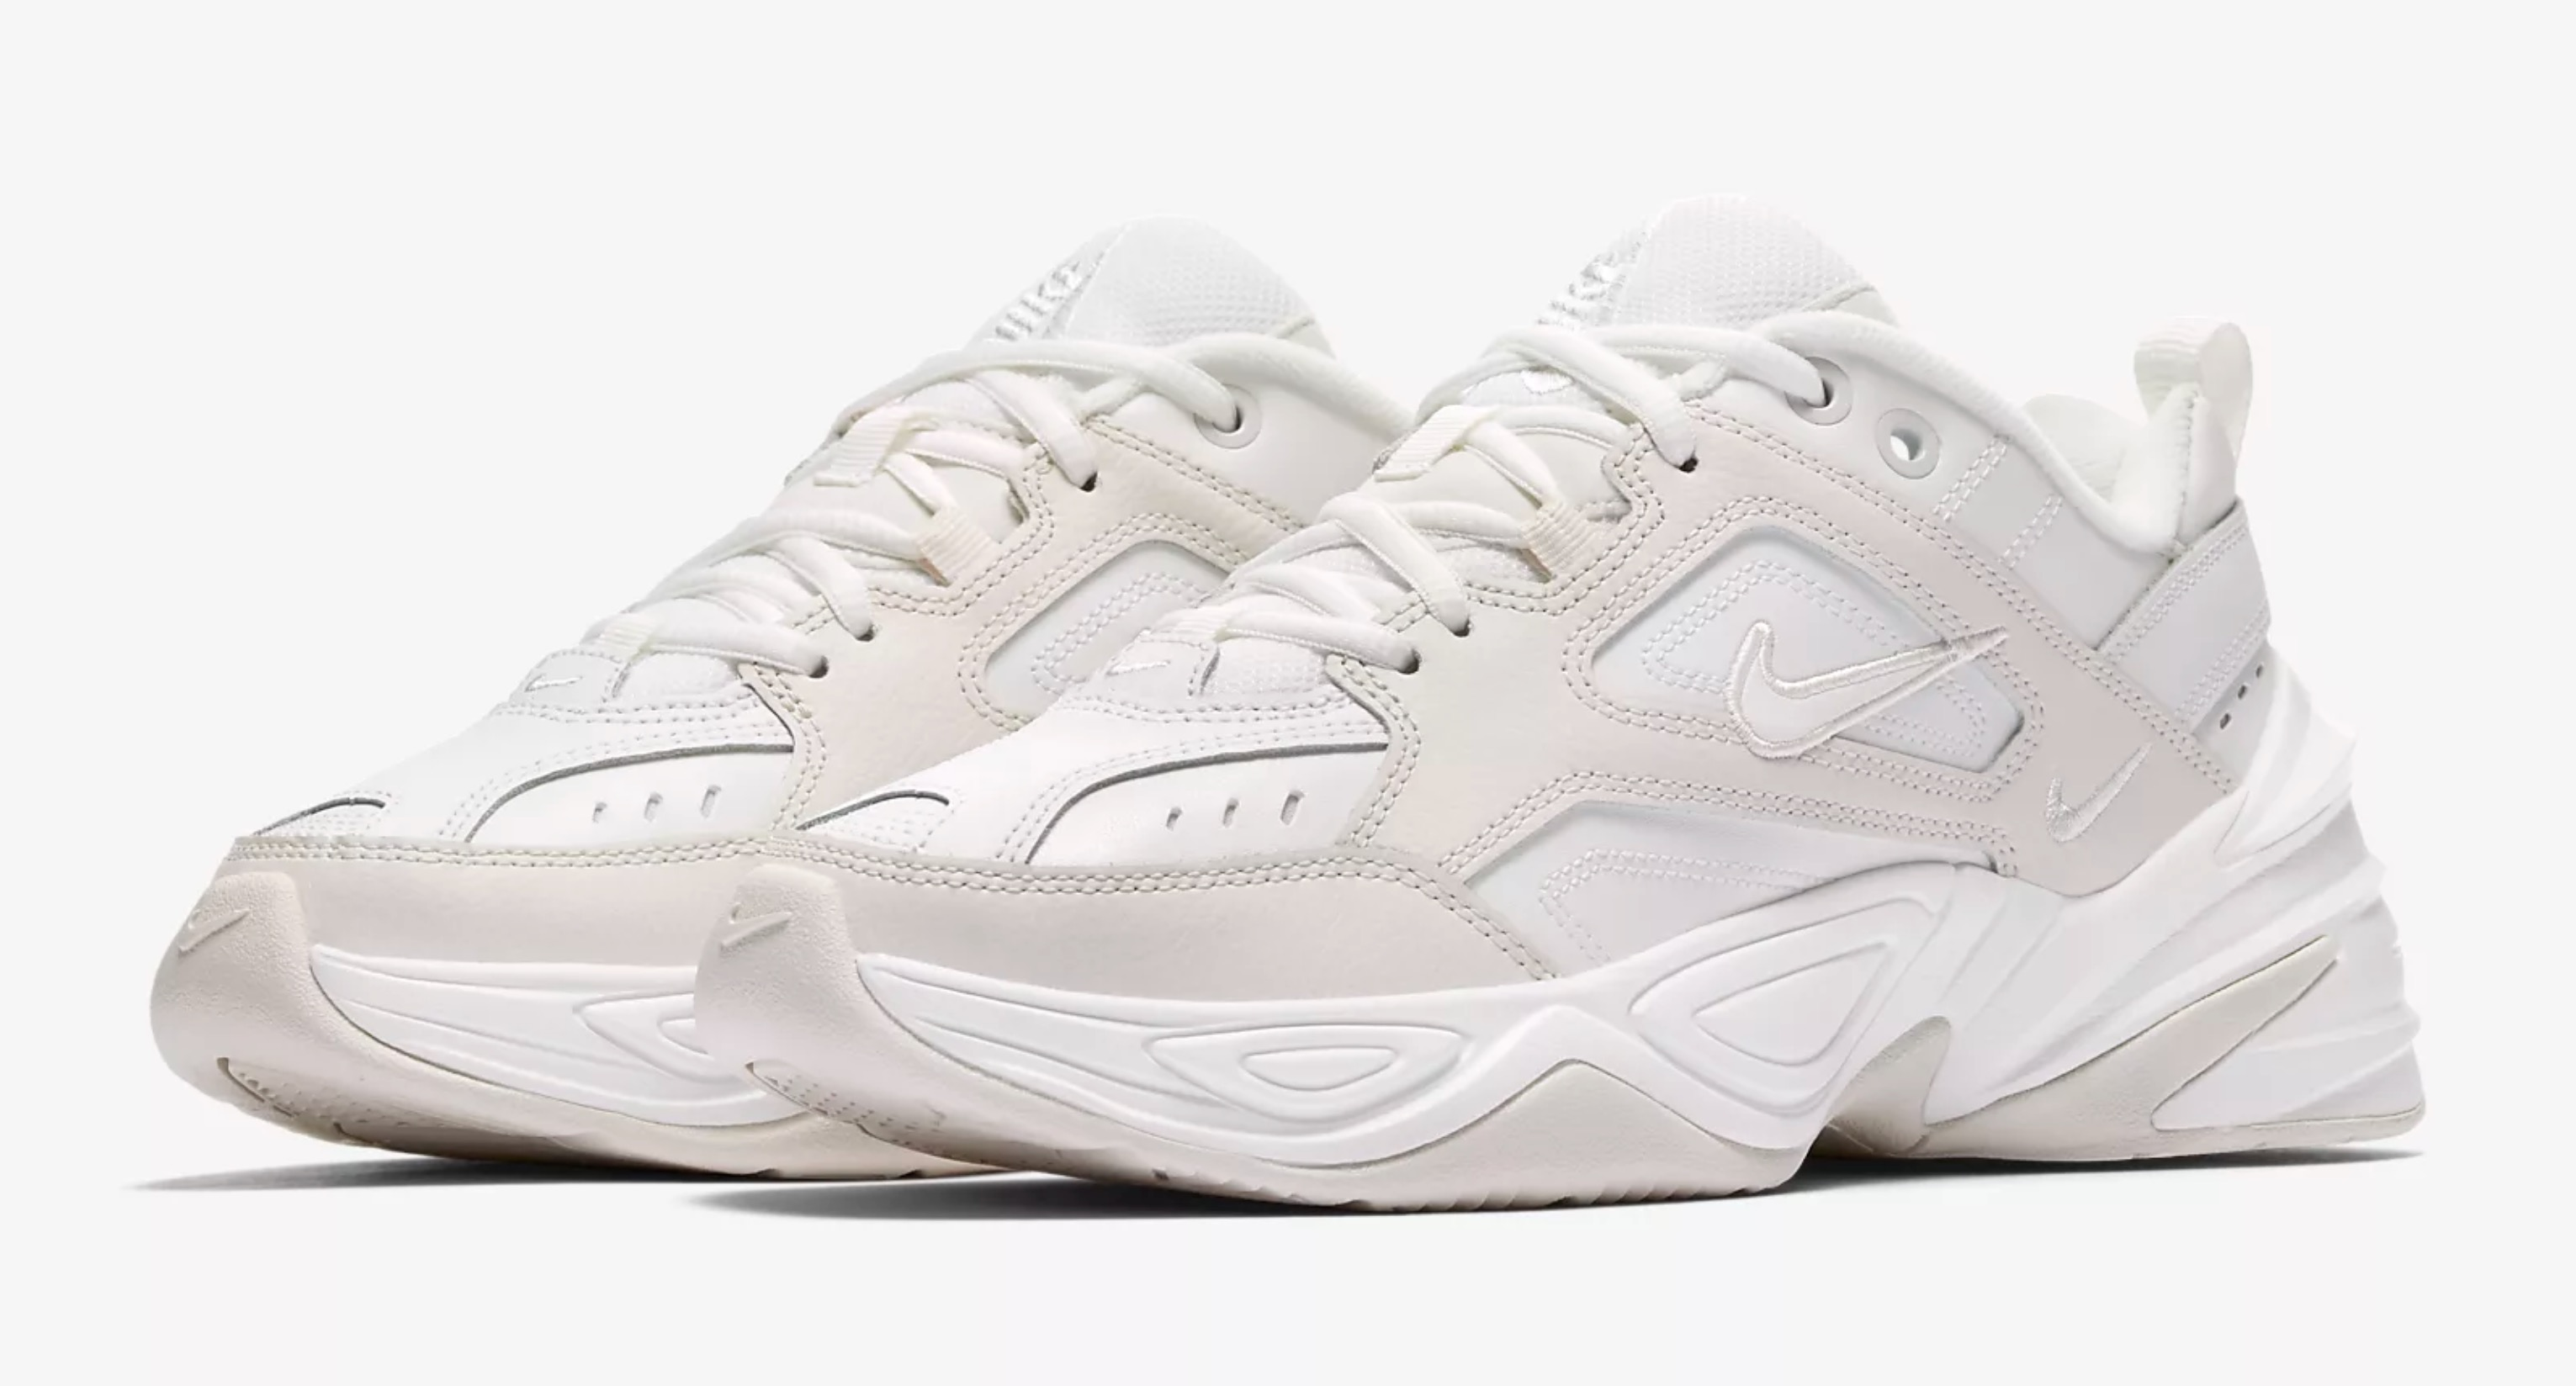 Nike's M2k Tekno Returns In Two New Colourways4